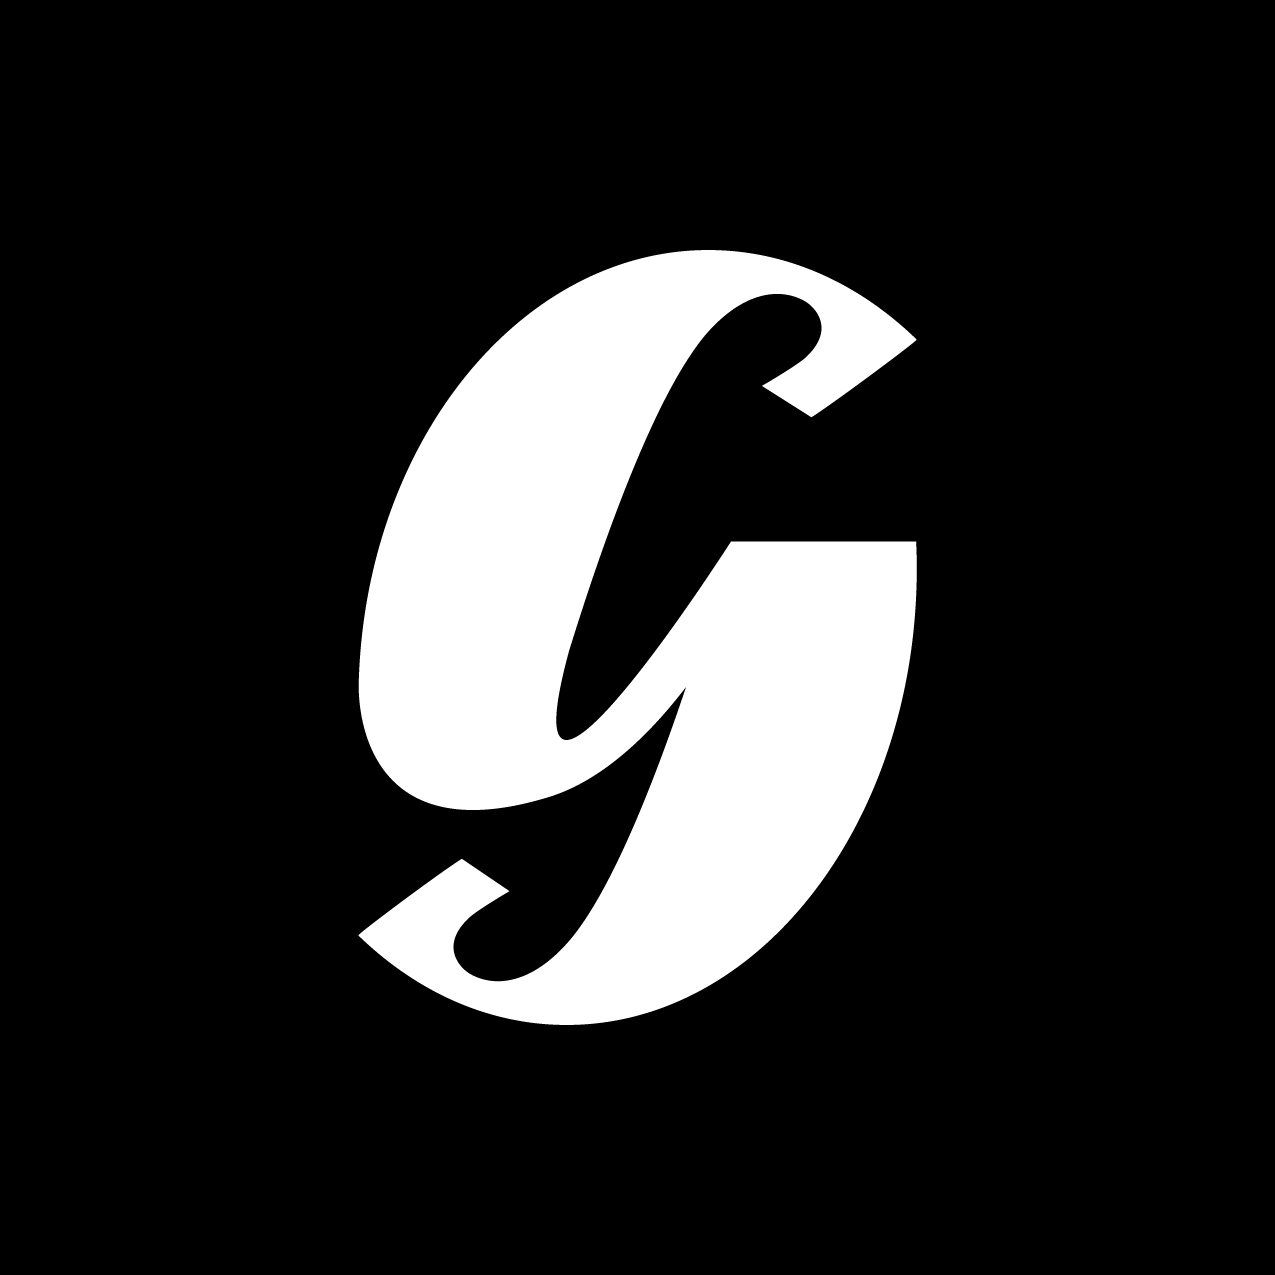 Letter G6 design by Furia